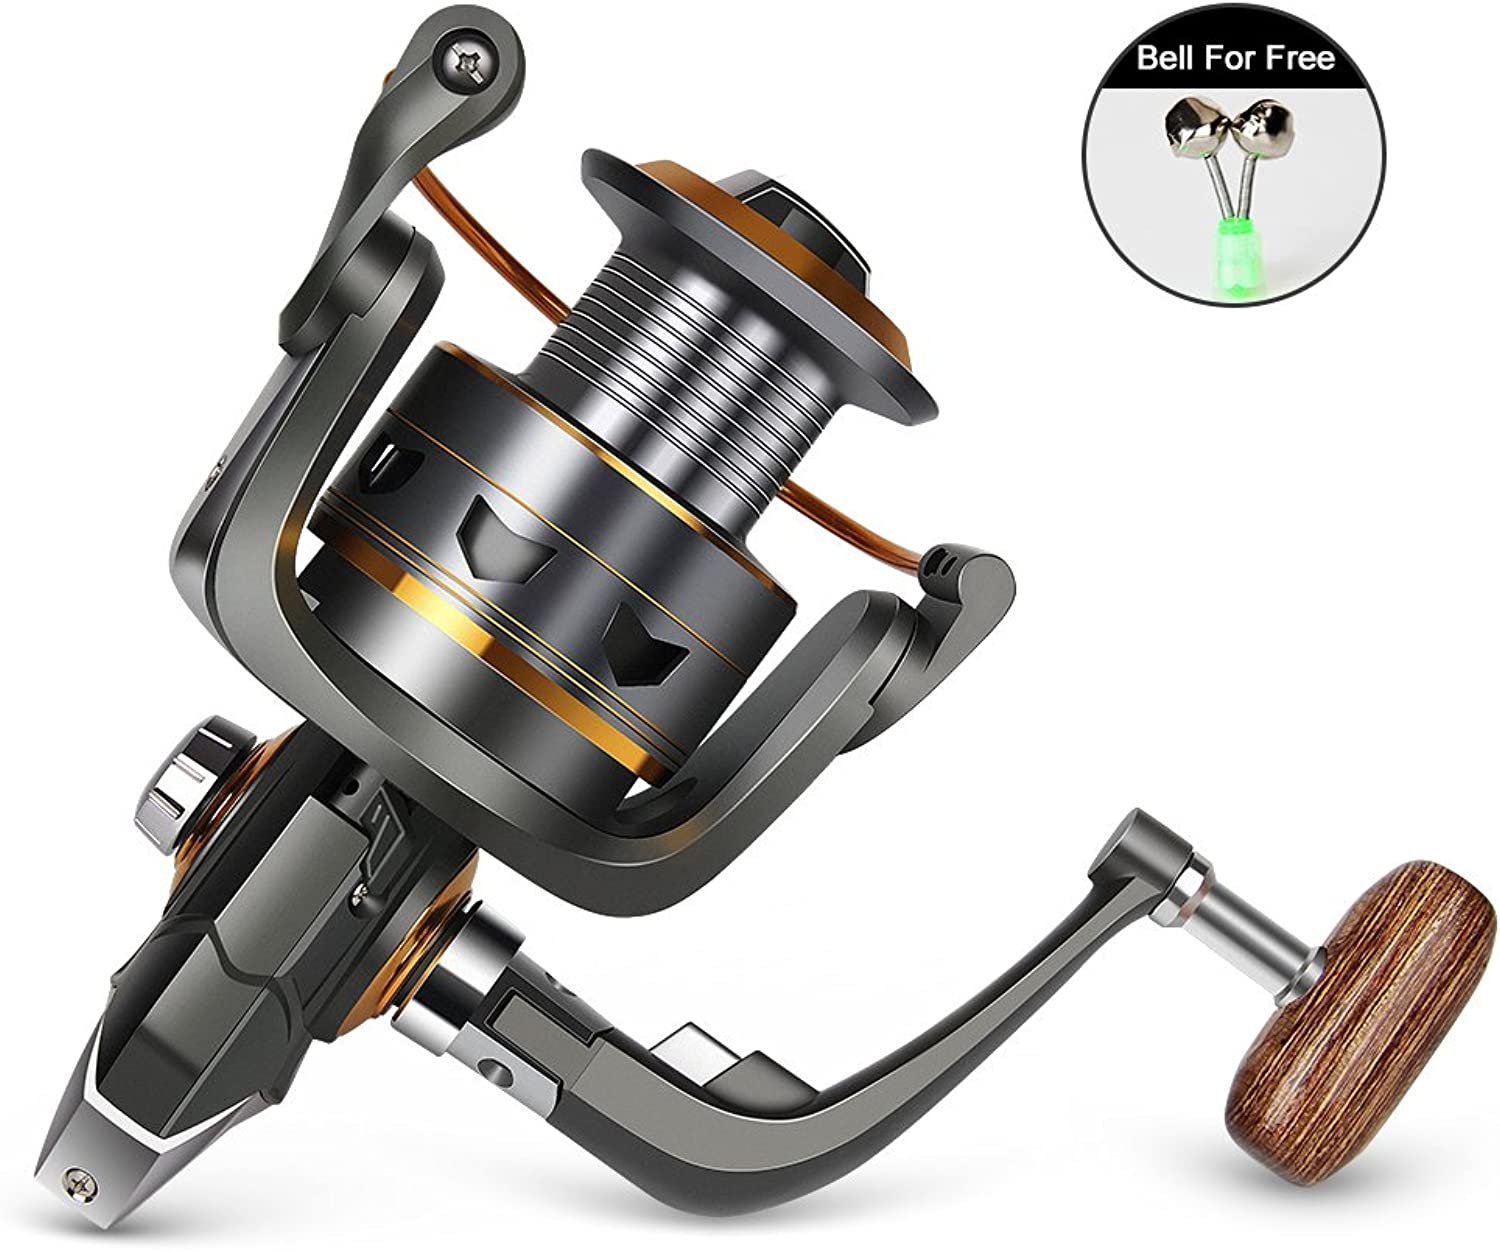 (Silver-4000) - WATERFLY Fishing Spinning Reel, Lightweight Smooth Powerful Spinning Reel for Left & Right Hand Salt & Fresh Water Fishing